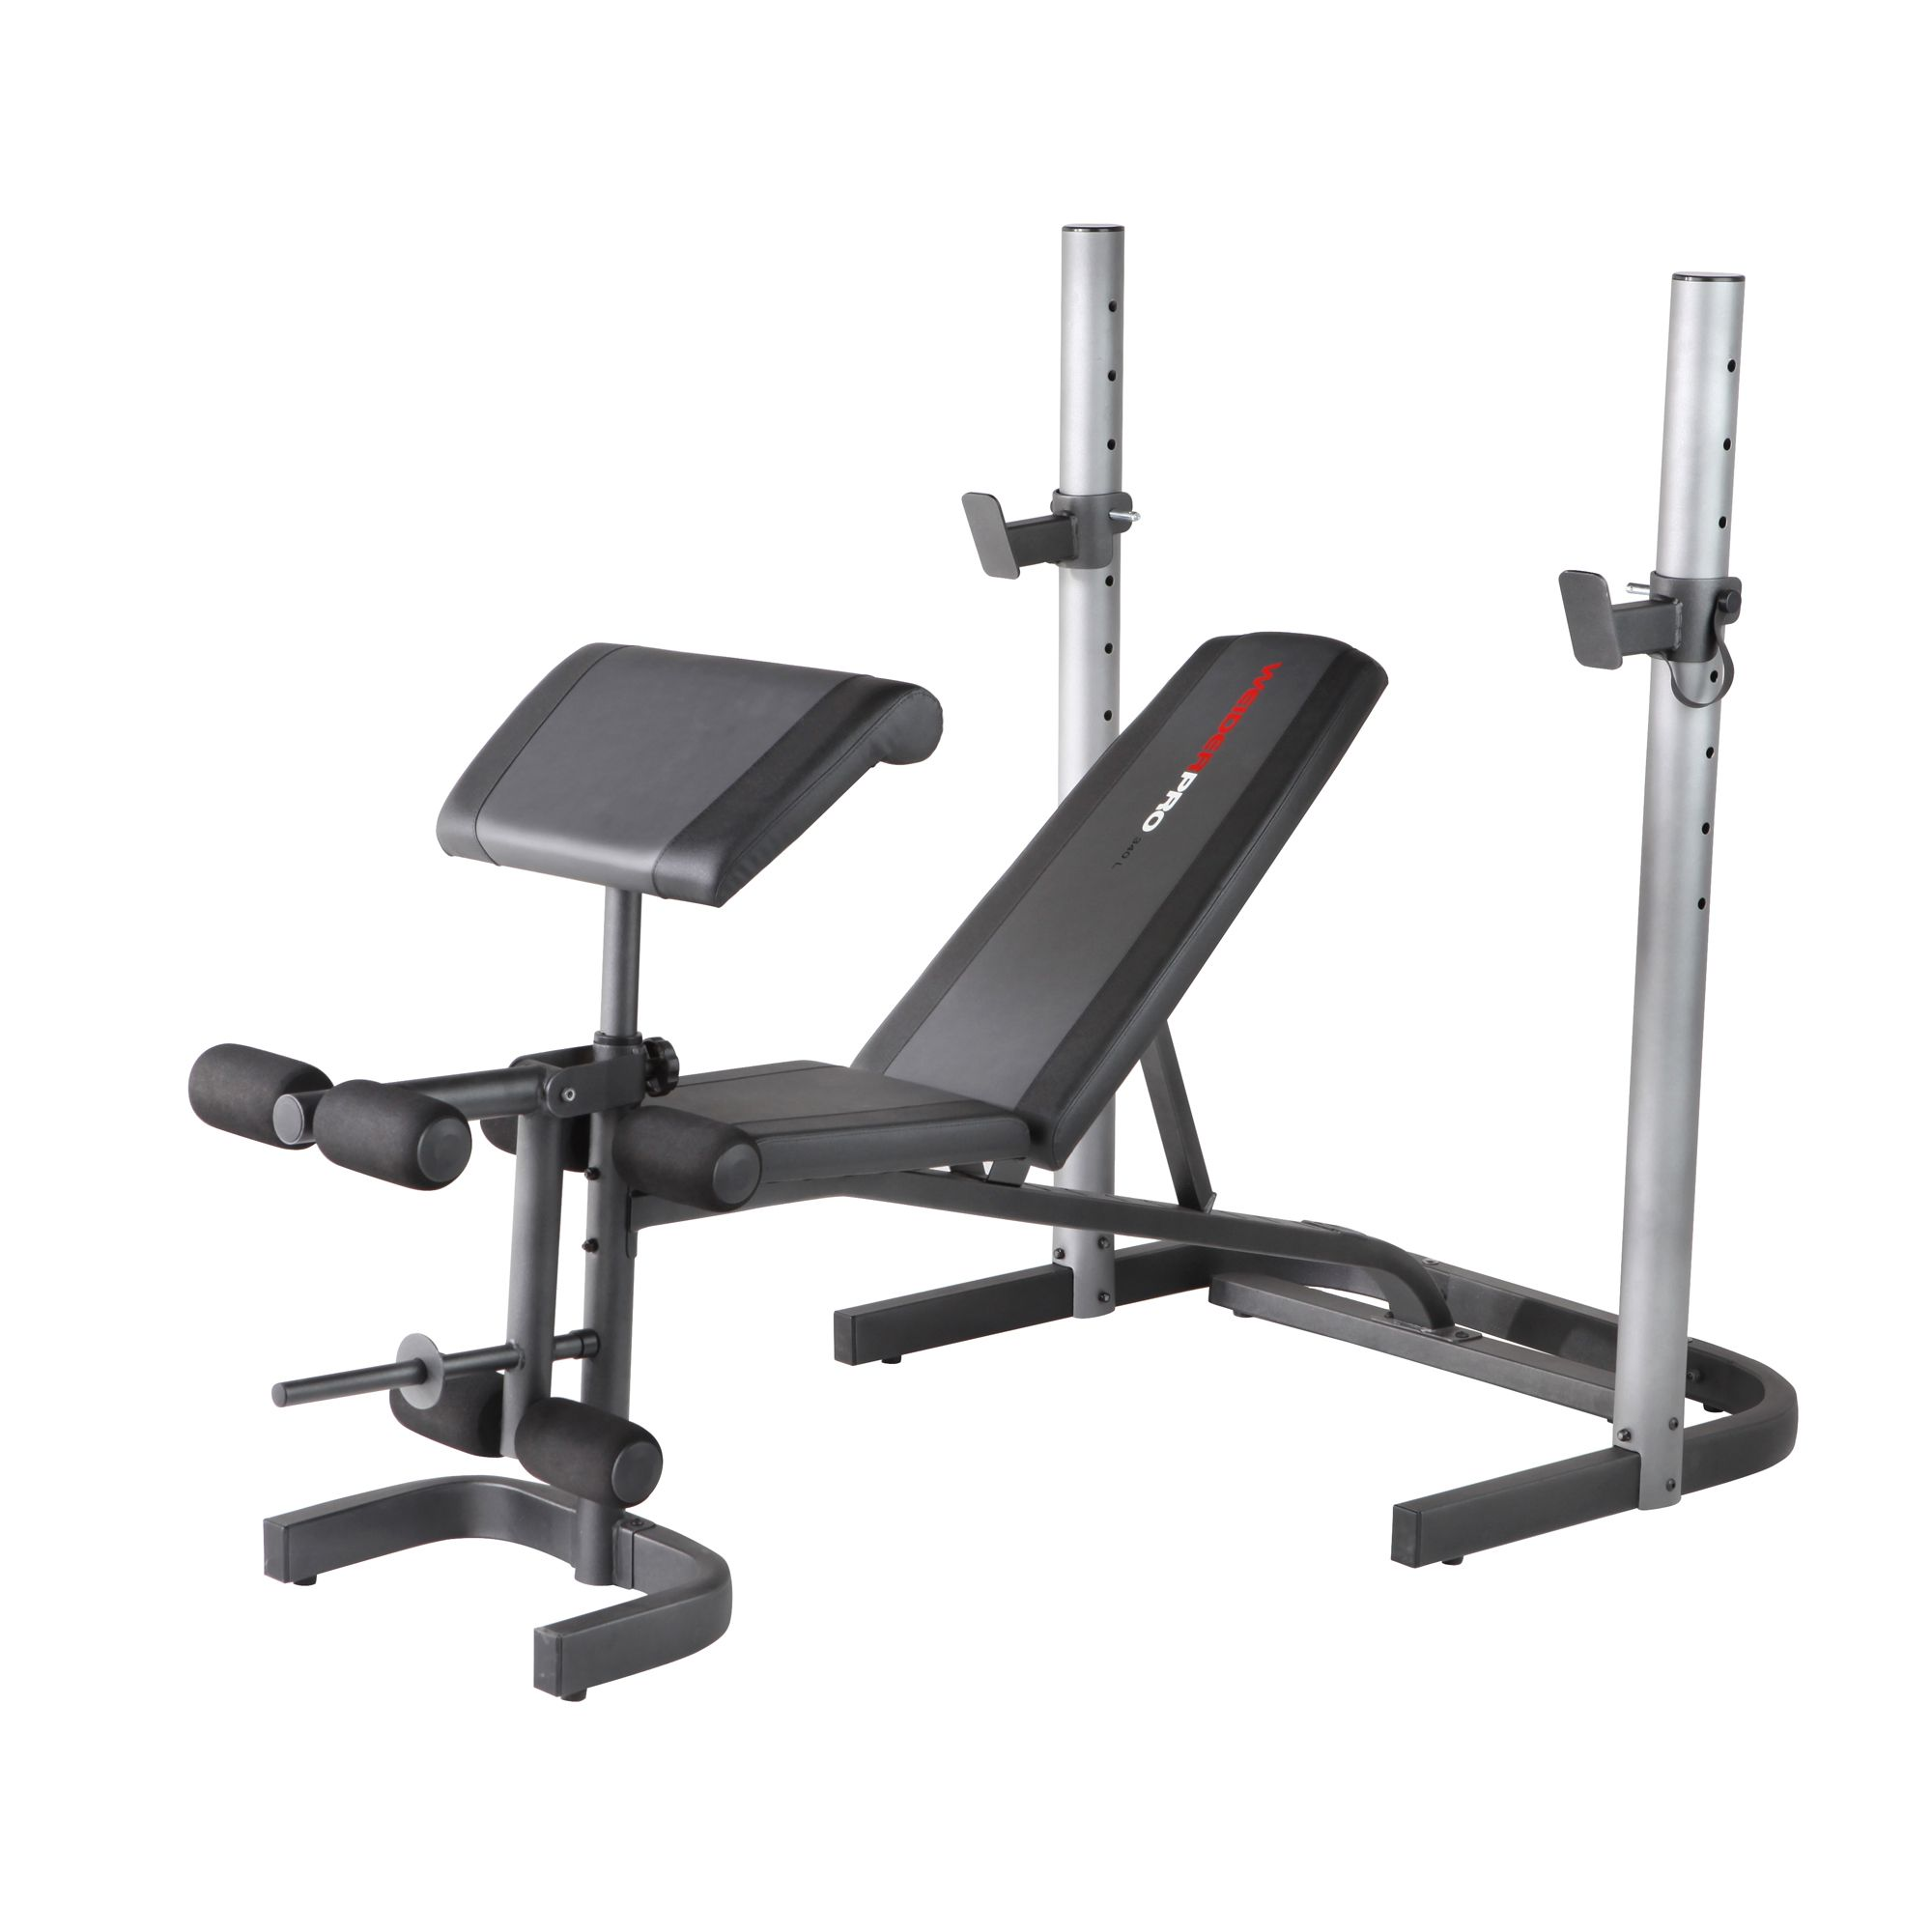 Weider Pro 340 L Weight Bench